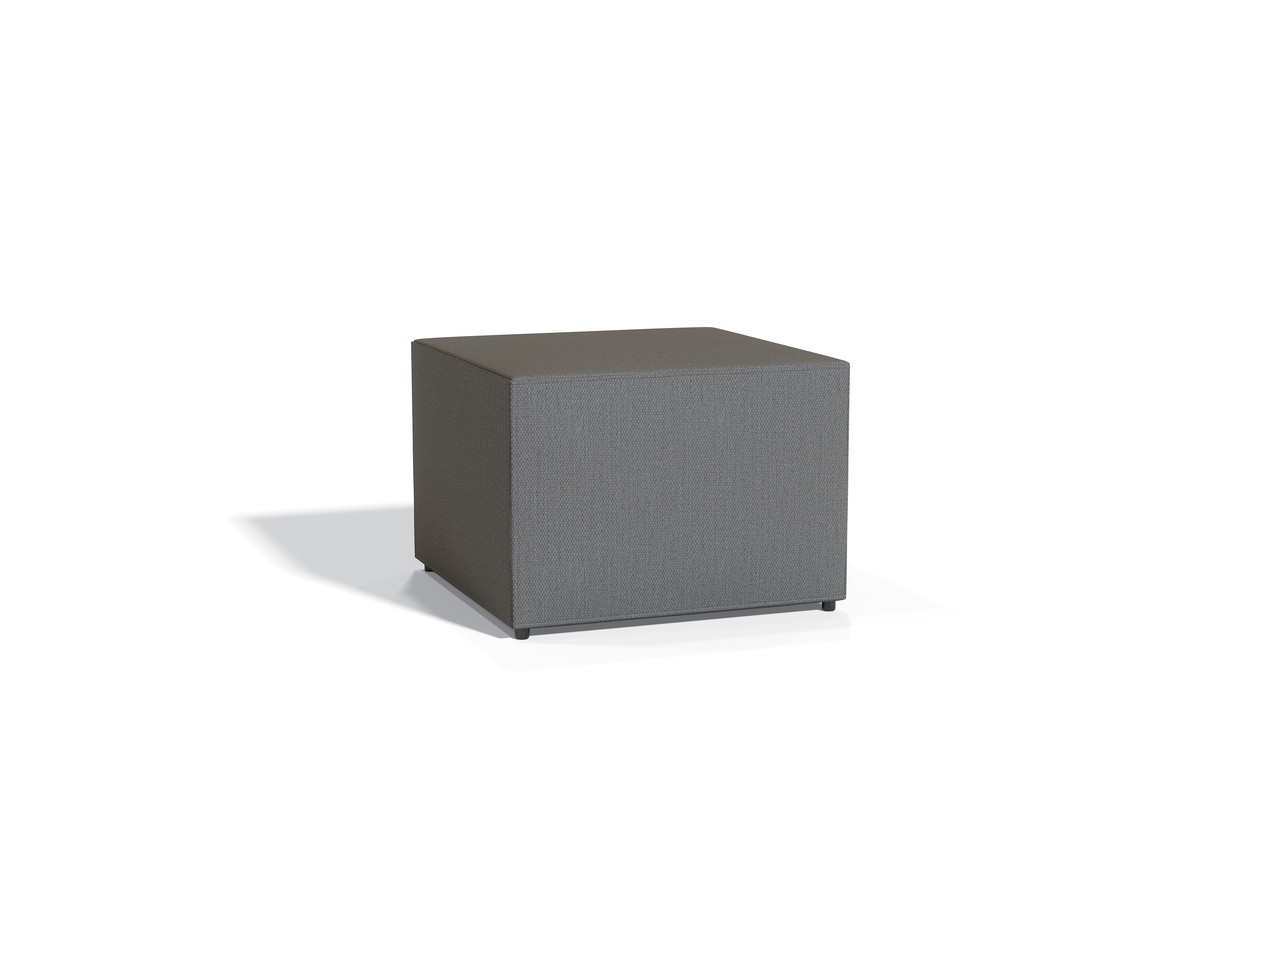 model 13012 square shaped offices to go ottoman in grey